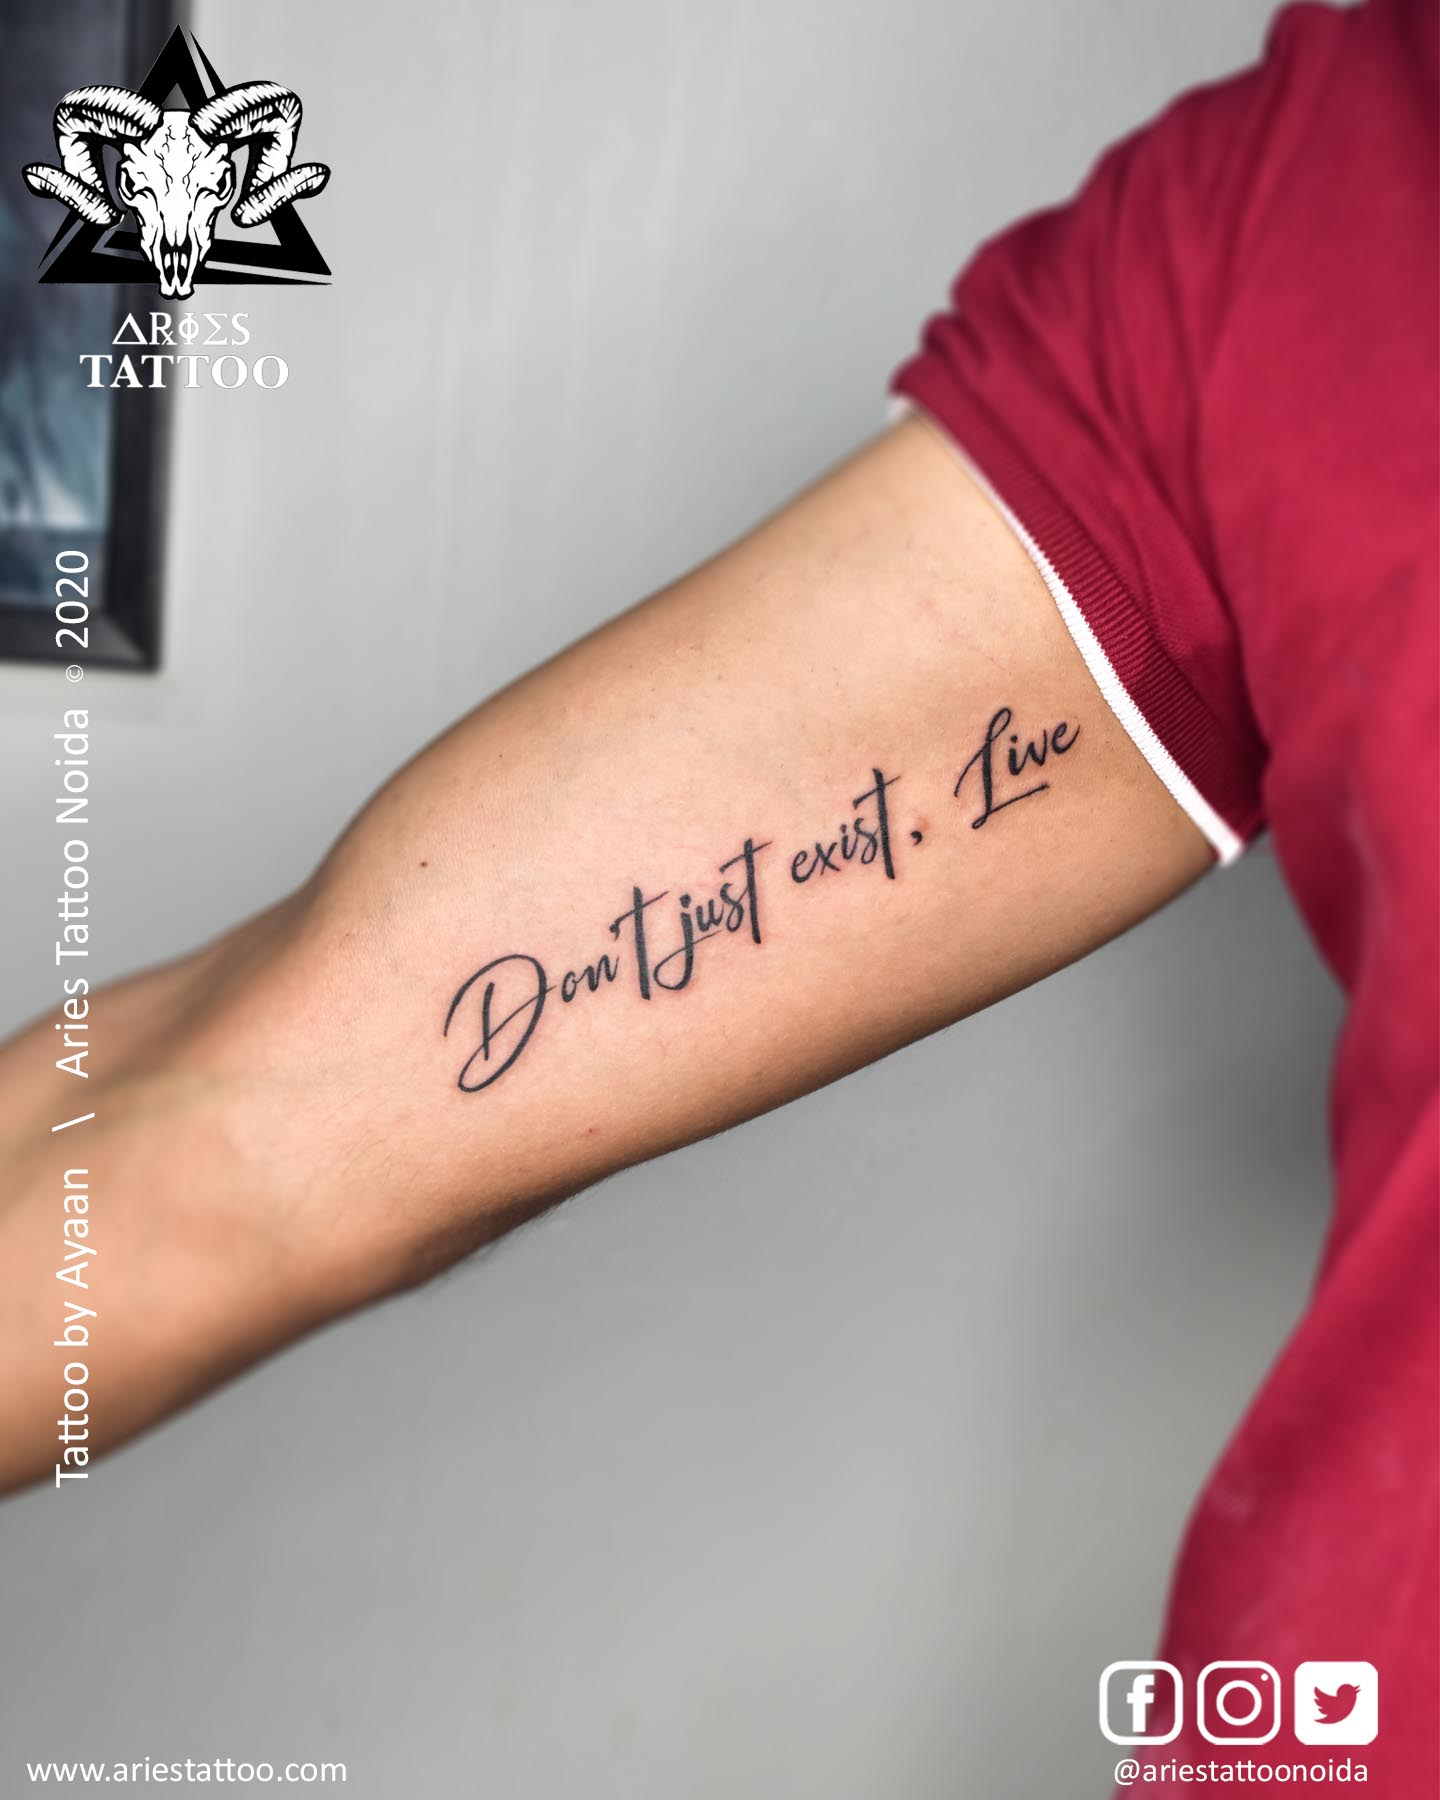 scripted tattoo_ayaan_ariestattoonoida | scripted tattoo_mandeep_ariestattoonoida | |Aries Tattoo Noida | Tattoo Shop and Studio In Noida